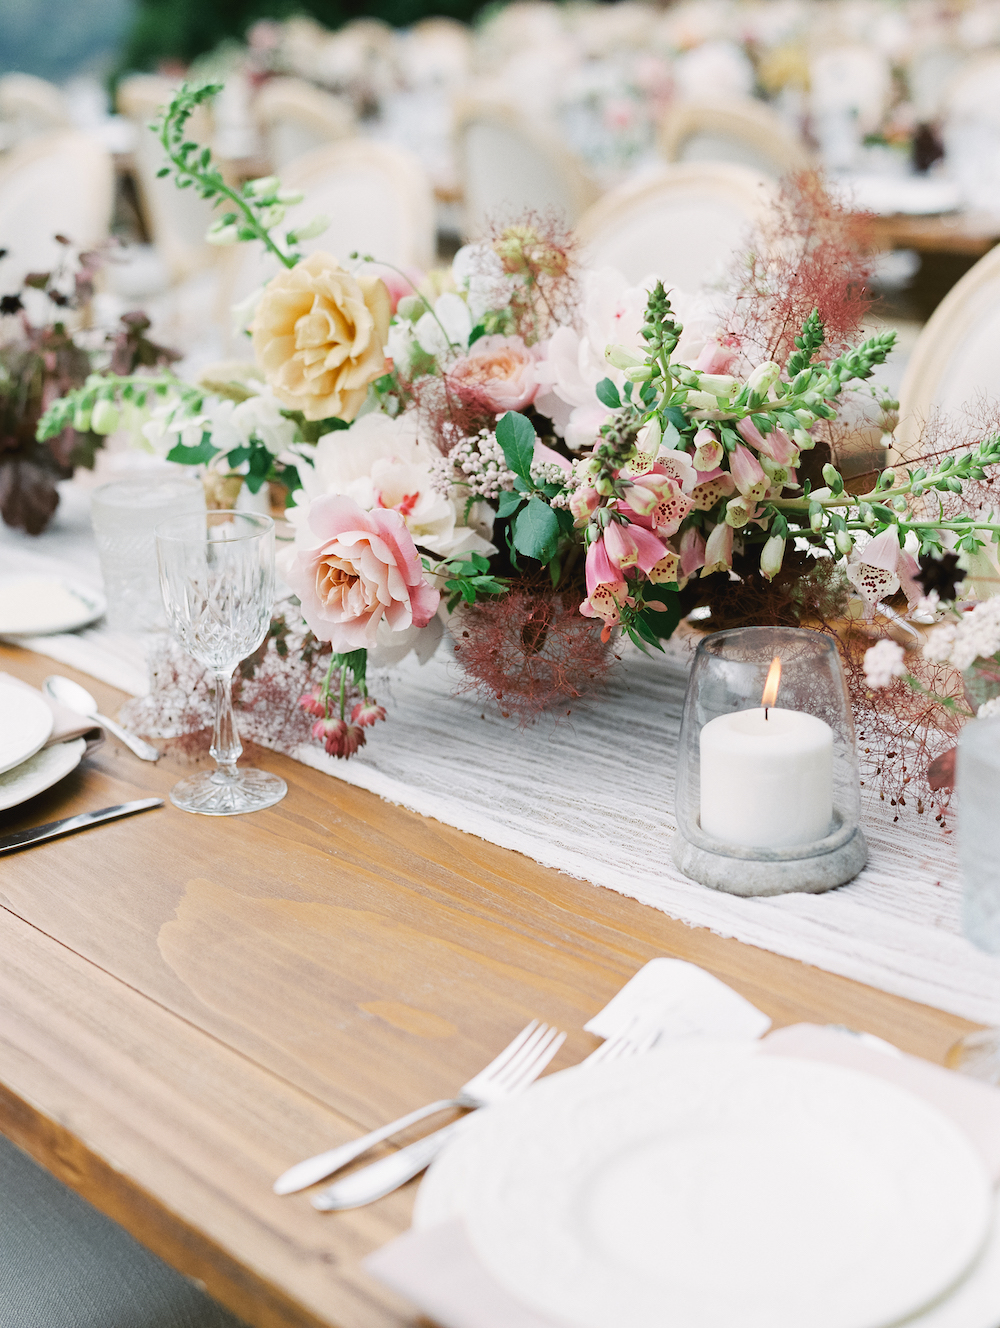 A guest's point-of-view of the tablescape; how lovely to frame conversation and courses with candlelight and a compote of midsummer blooms.   Photo by Michele Beckwith.